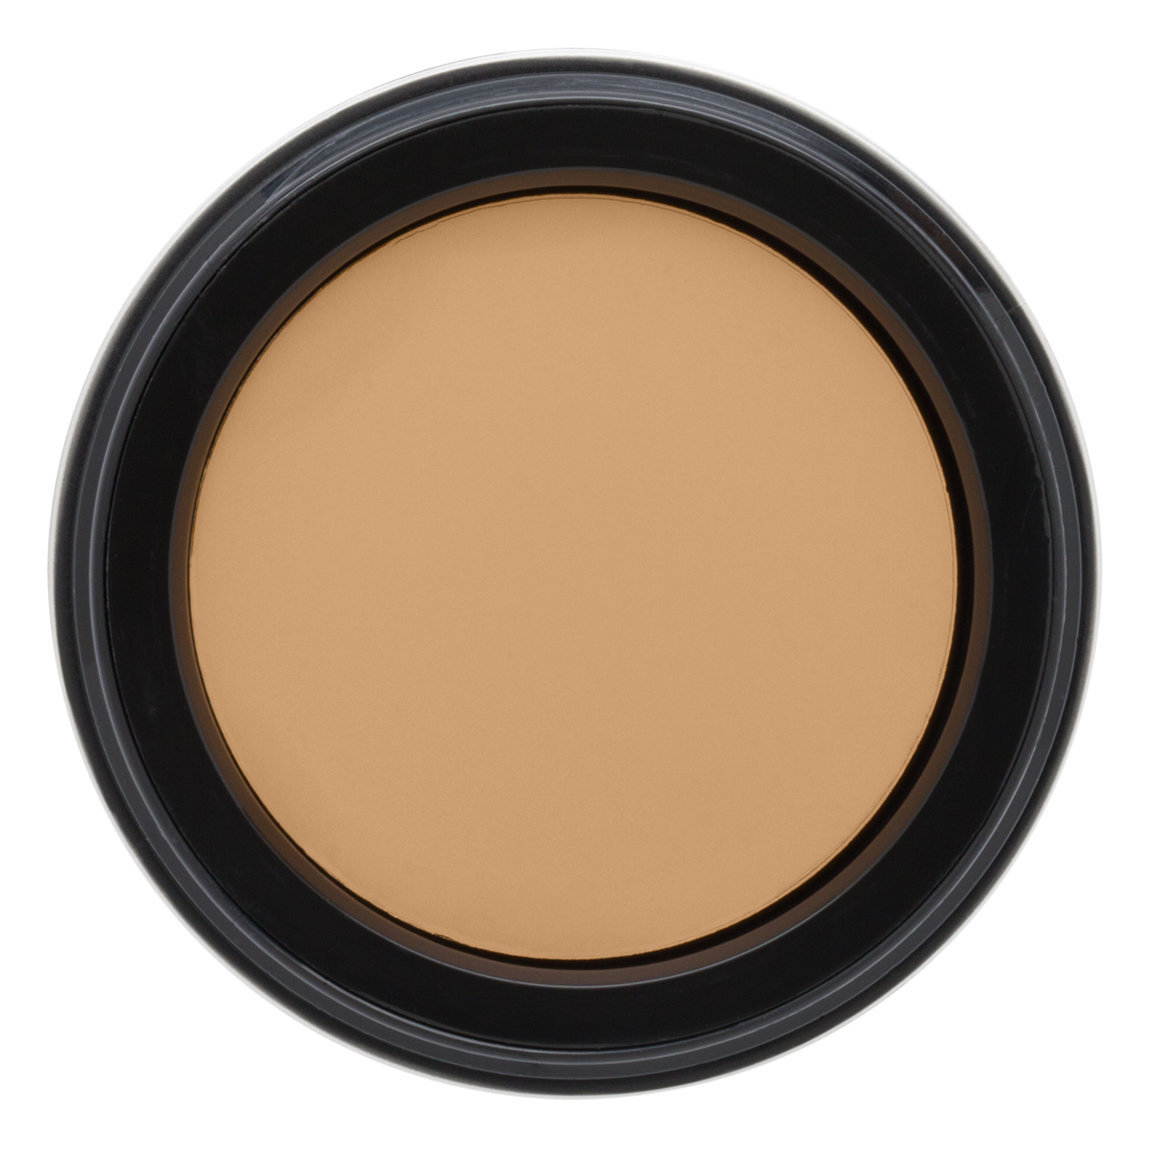 Benefit Cosmetics Boi-ing Industrial Strength Full Coverage Cream Concealer 04 Medium/Tan alternative view 1 - product swatch.